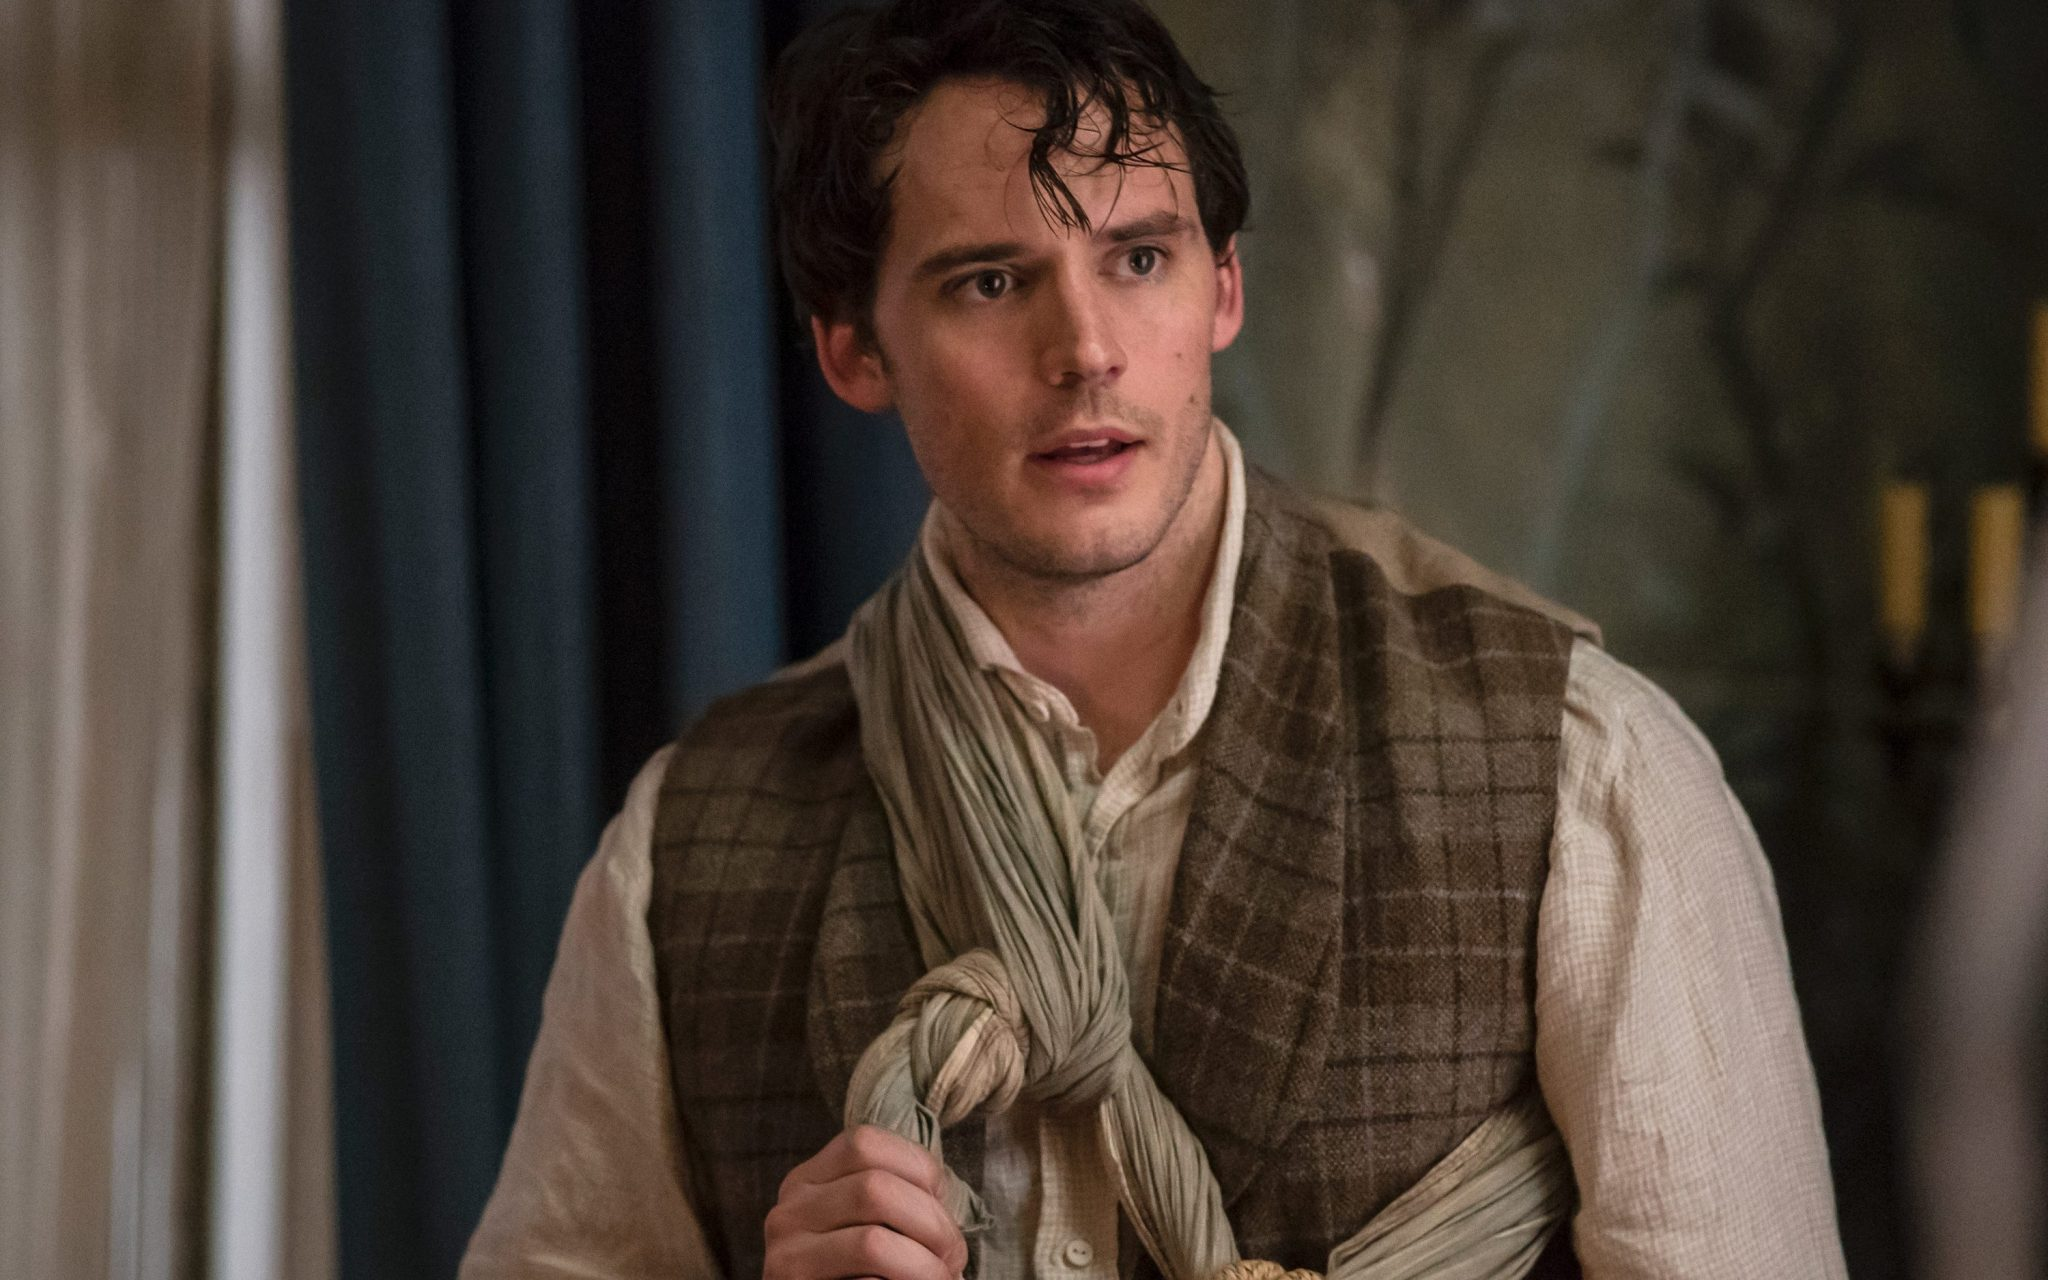 Sam Claflin Succumbs To Rachel Weisz's Charms In 'My Cousin Rachel' Clip